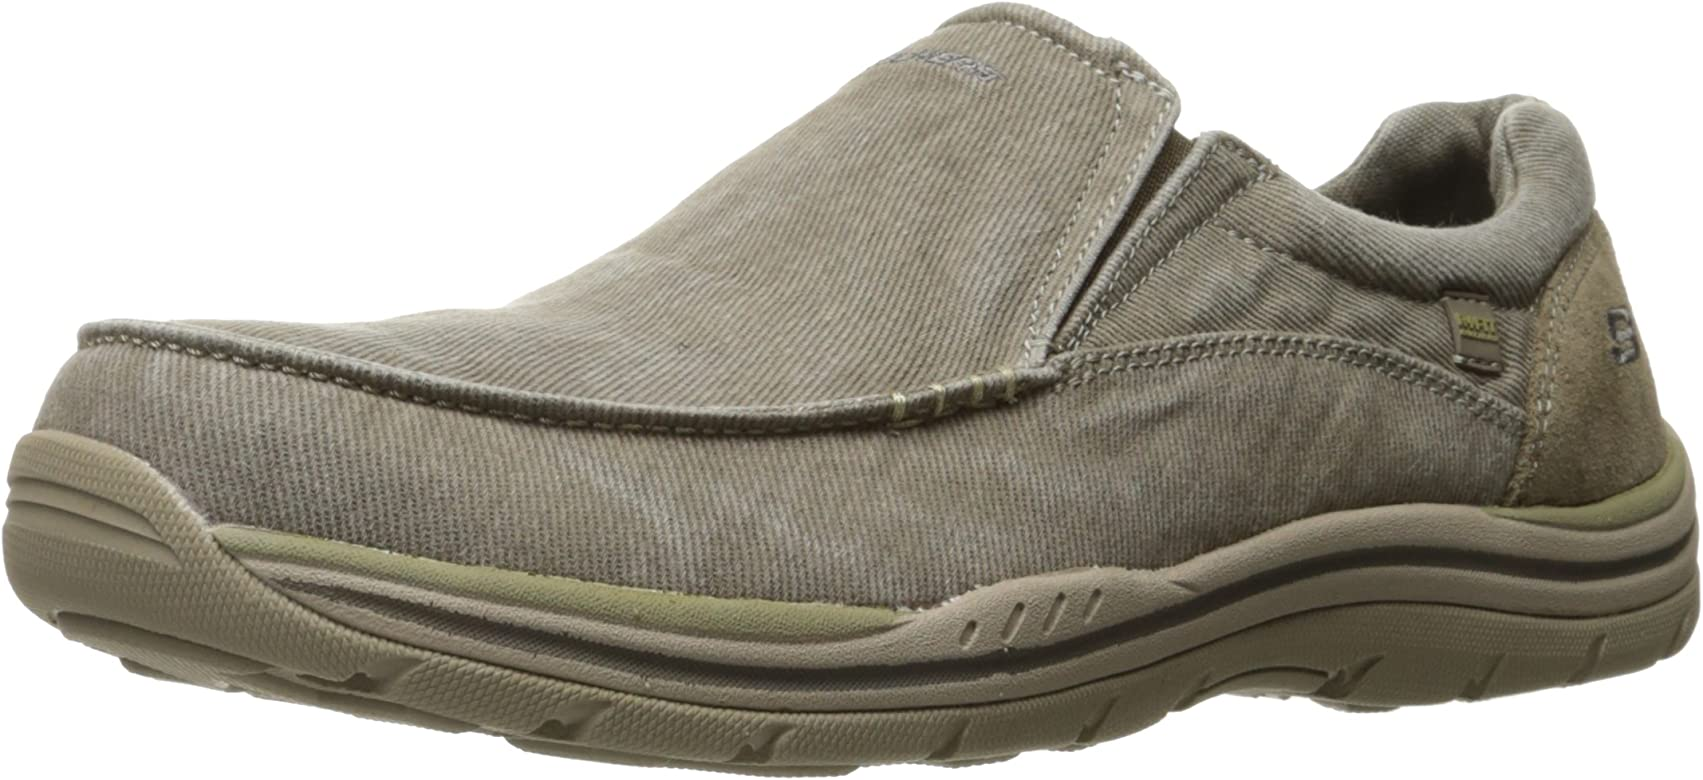 Amazon.com | Skechers USA Men's Expected Avillo Relaxed-Fit Slip ...